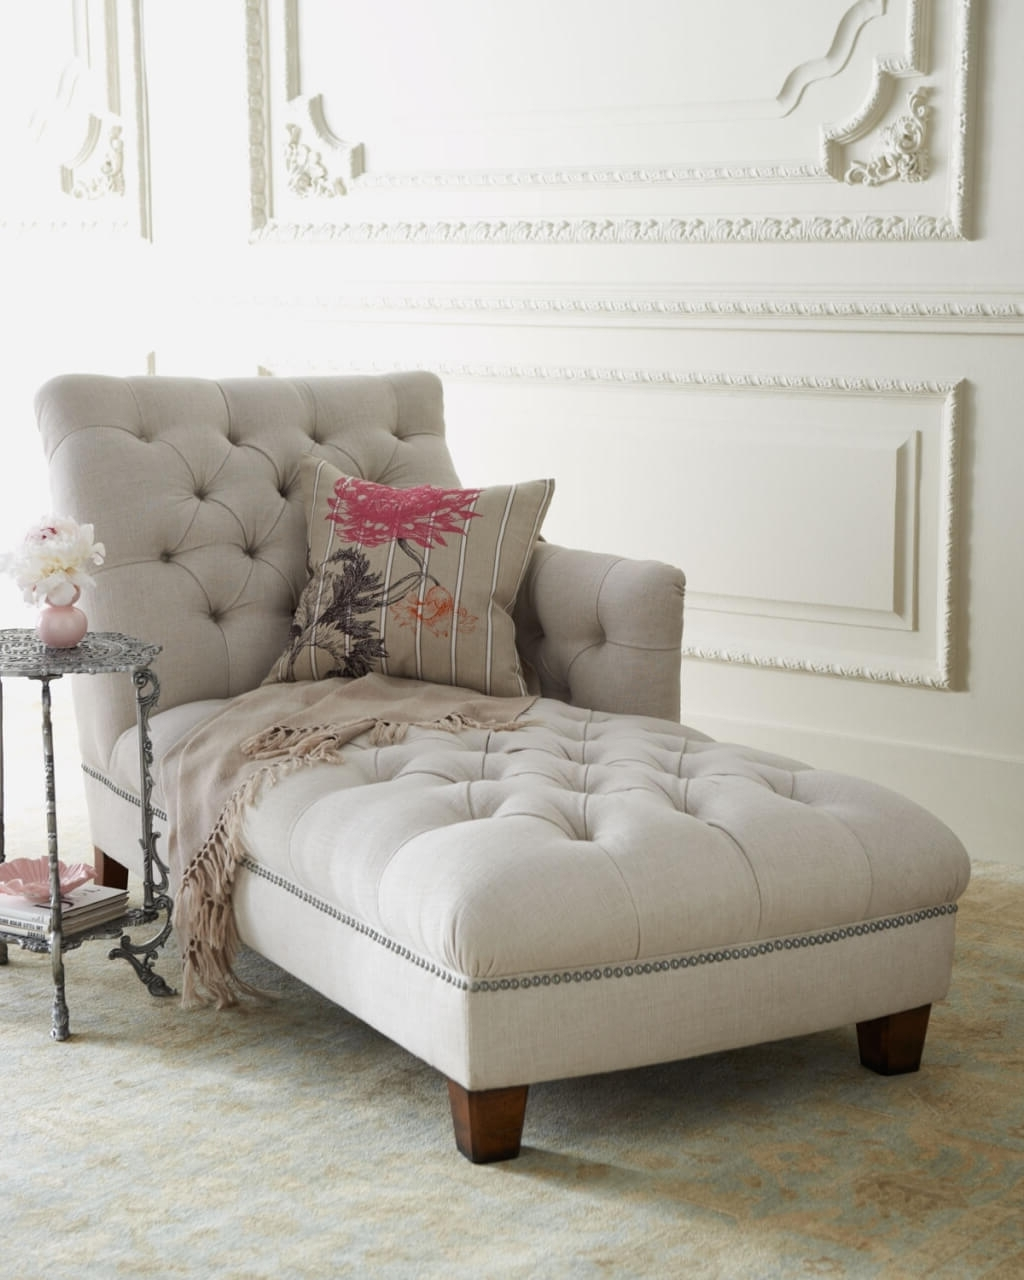 Trendy Furniture: Relaxing White Tufted Chaise Lounge With Small Round In Target Chaise Lounges (View 8 of 15)